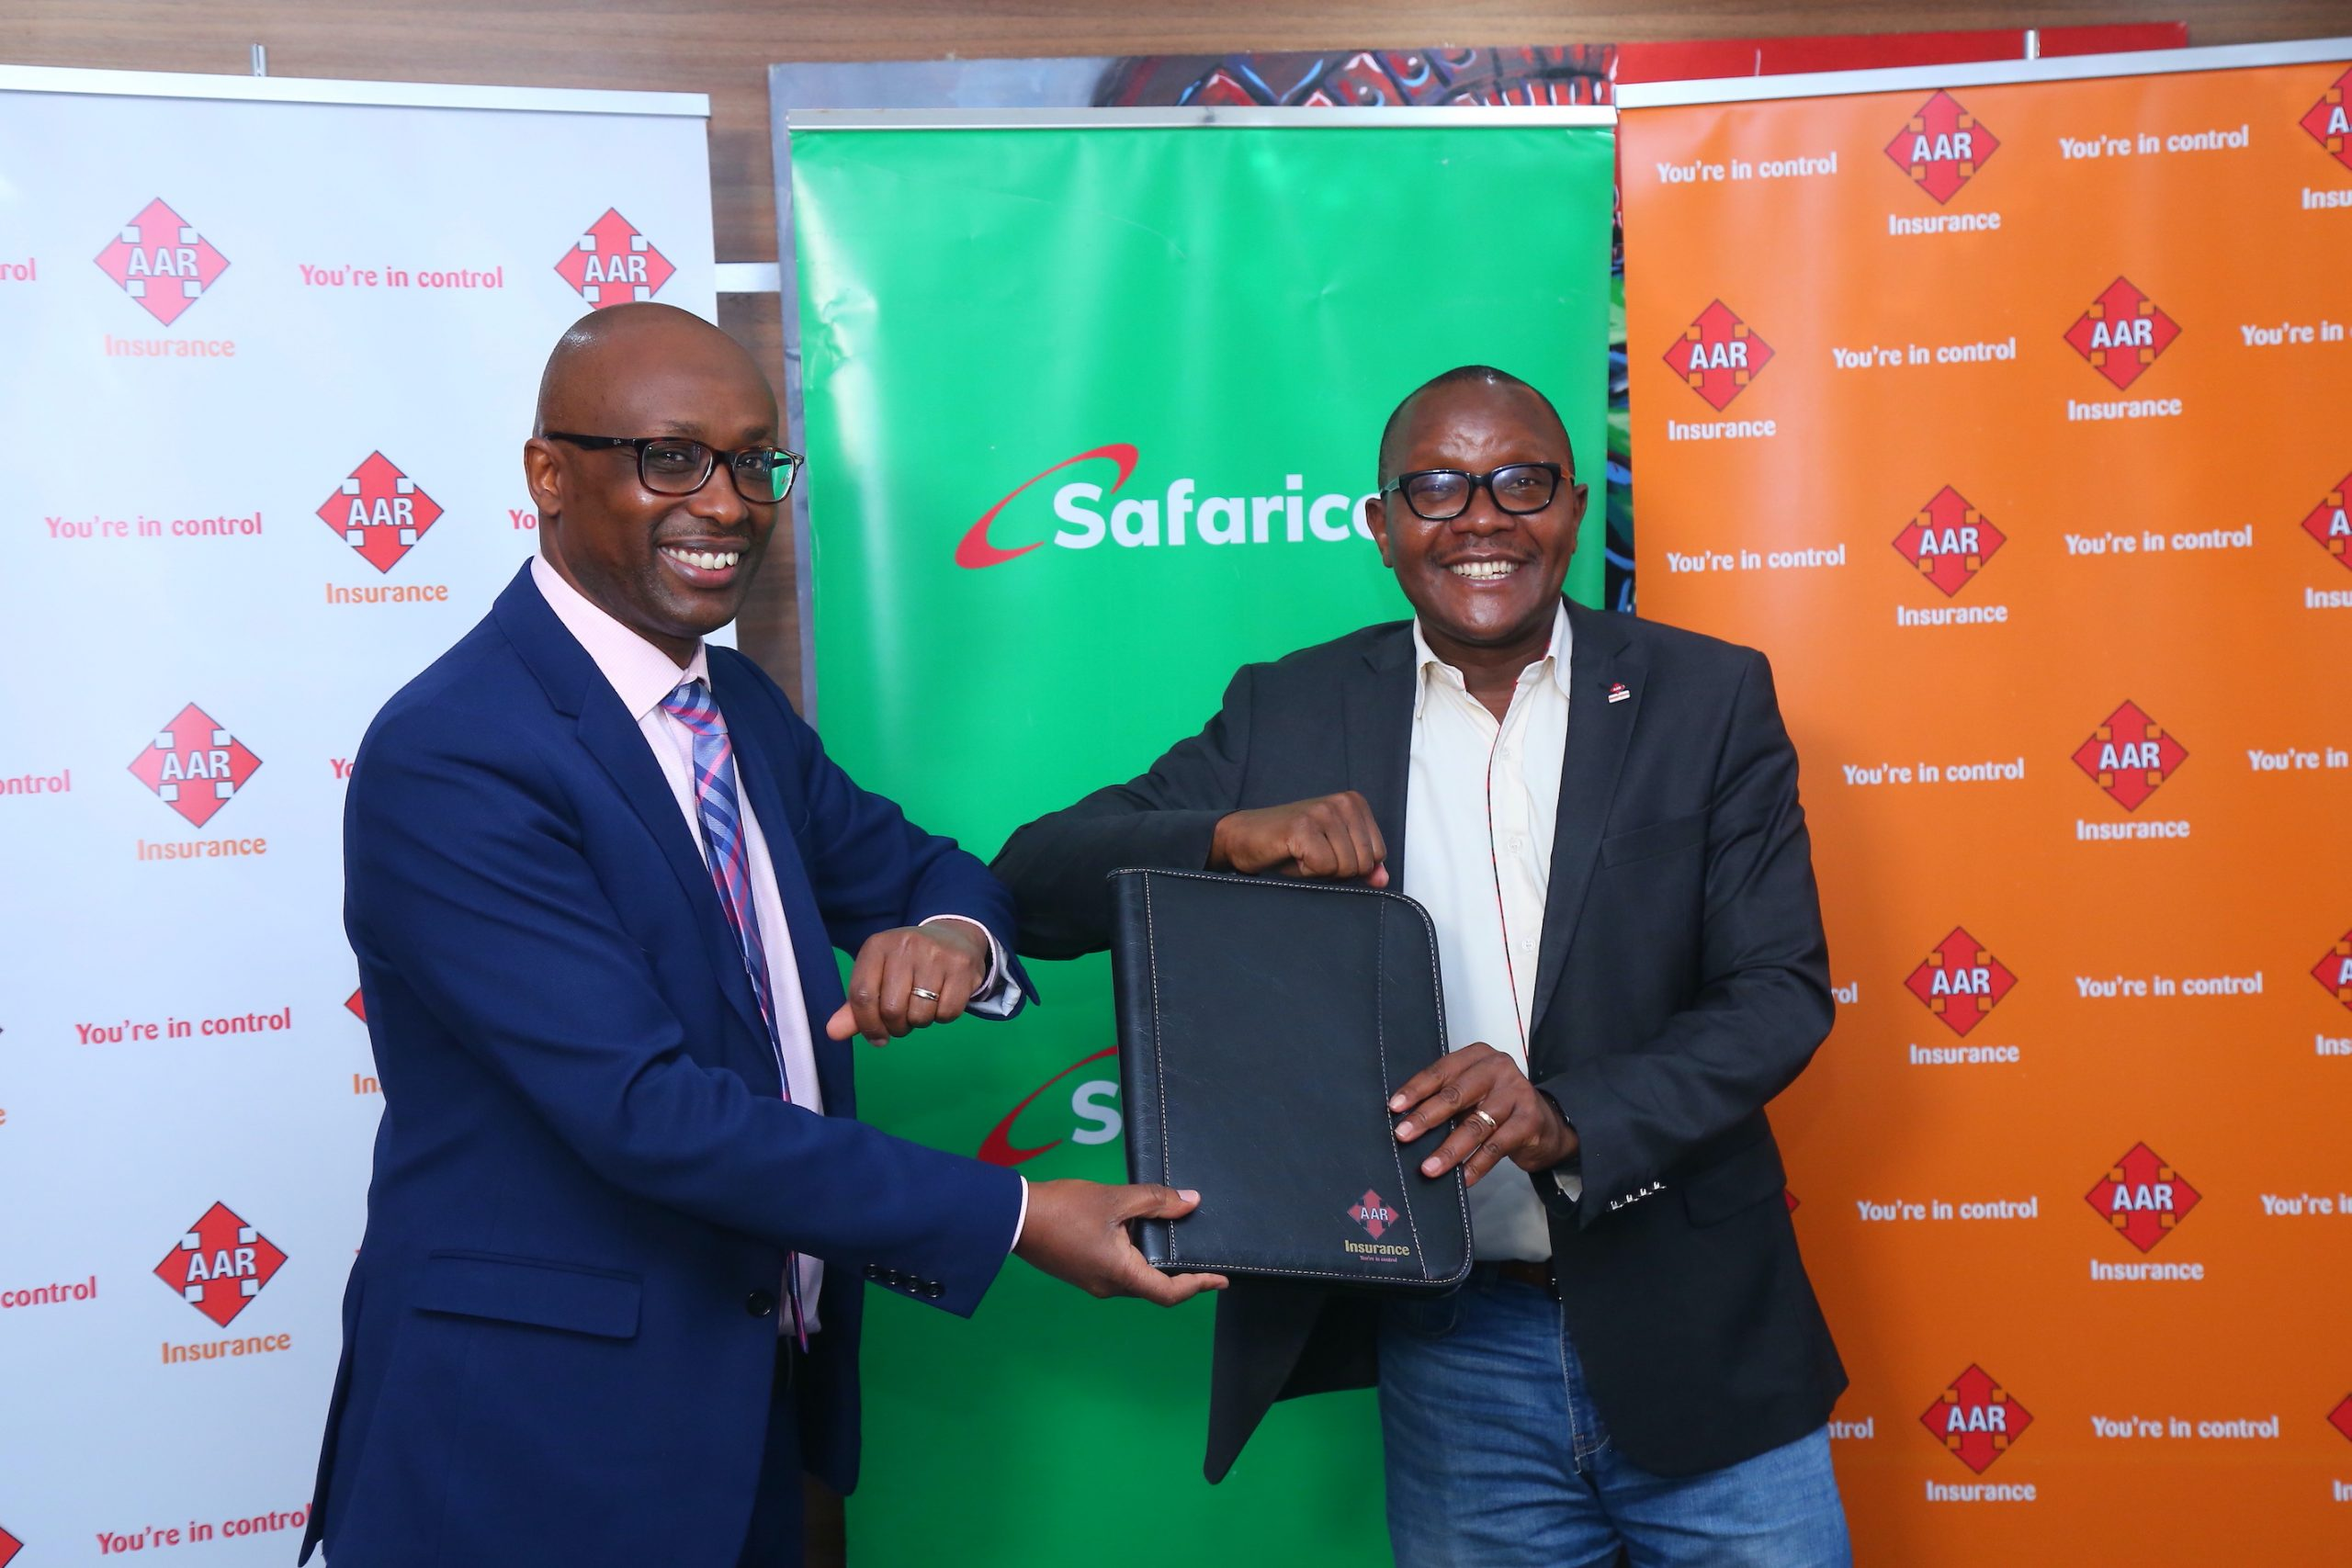 AAR Insurance Kenya Managing Director Nixon Shigoli (Right) and Safaricom Head of Department-Large Enterprise and Public Sector Joseph Wanjohi soon after signing a deal that will see the medical underwriter migrate its digital tools and core systems to the Amazon Web Services (AWS) platform, a move set to offer AAR Insurance Kenya clients more secure and efficient digital services.